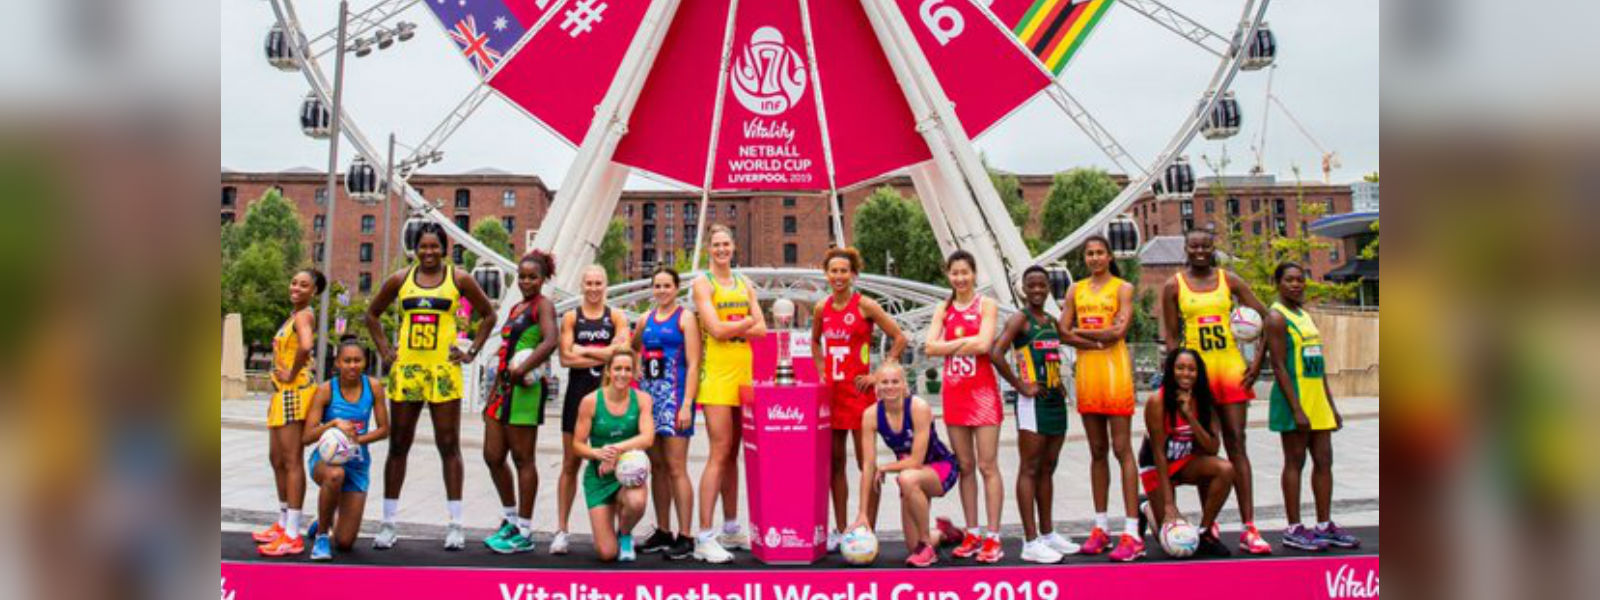 15th edition of Netball World Cup to commence